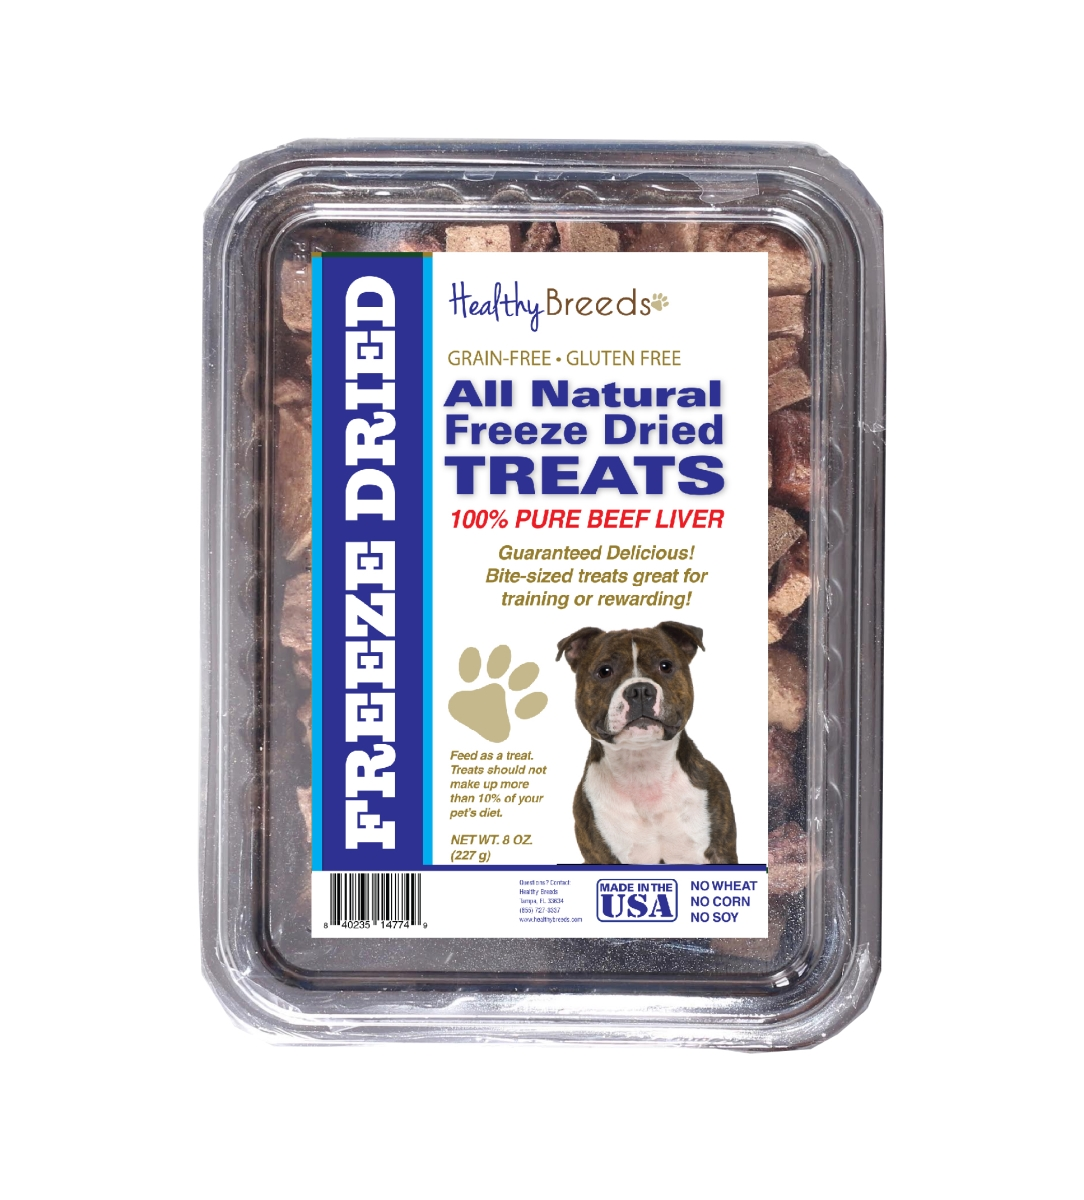 Healthy Breeds 840235147831 10 oz Staffordshire Bull Terrier All Natural Freeze Dried Treats Beef Liver